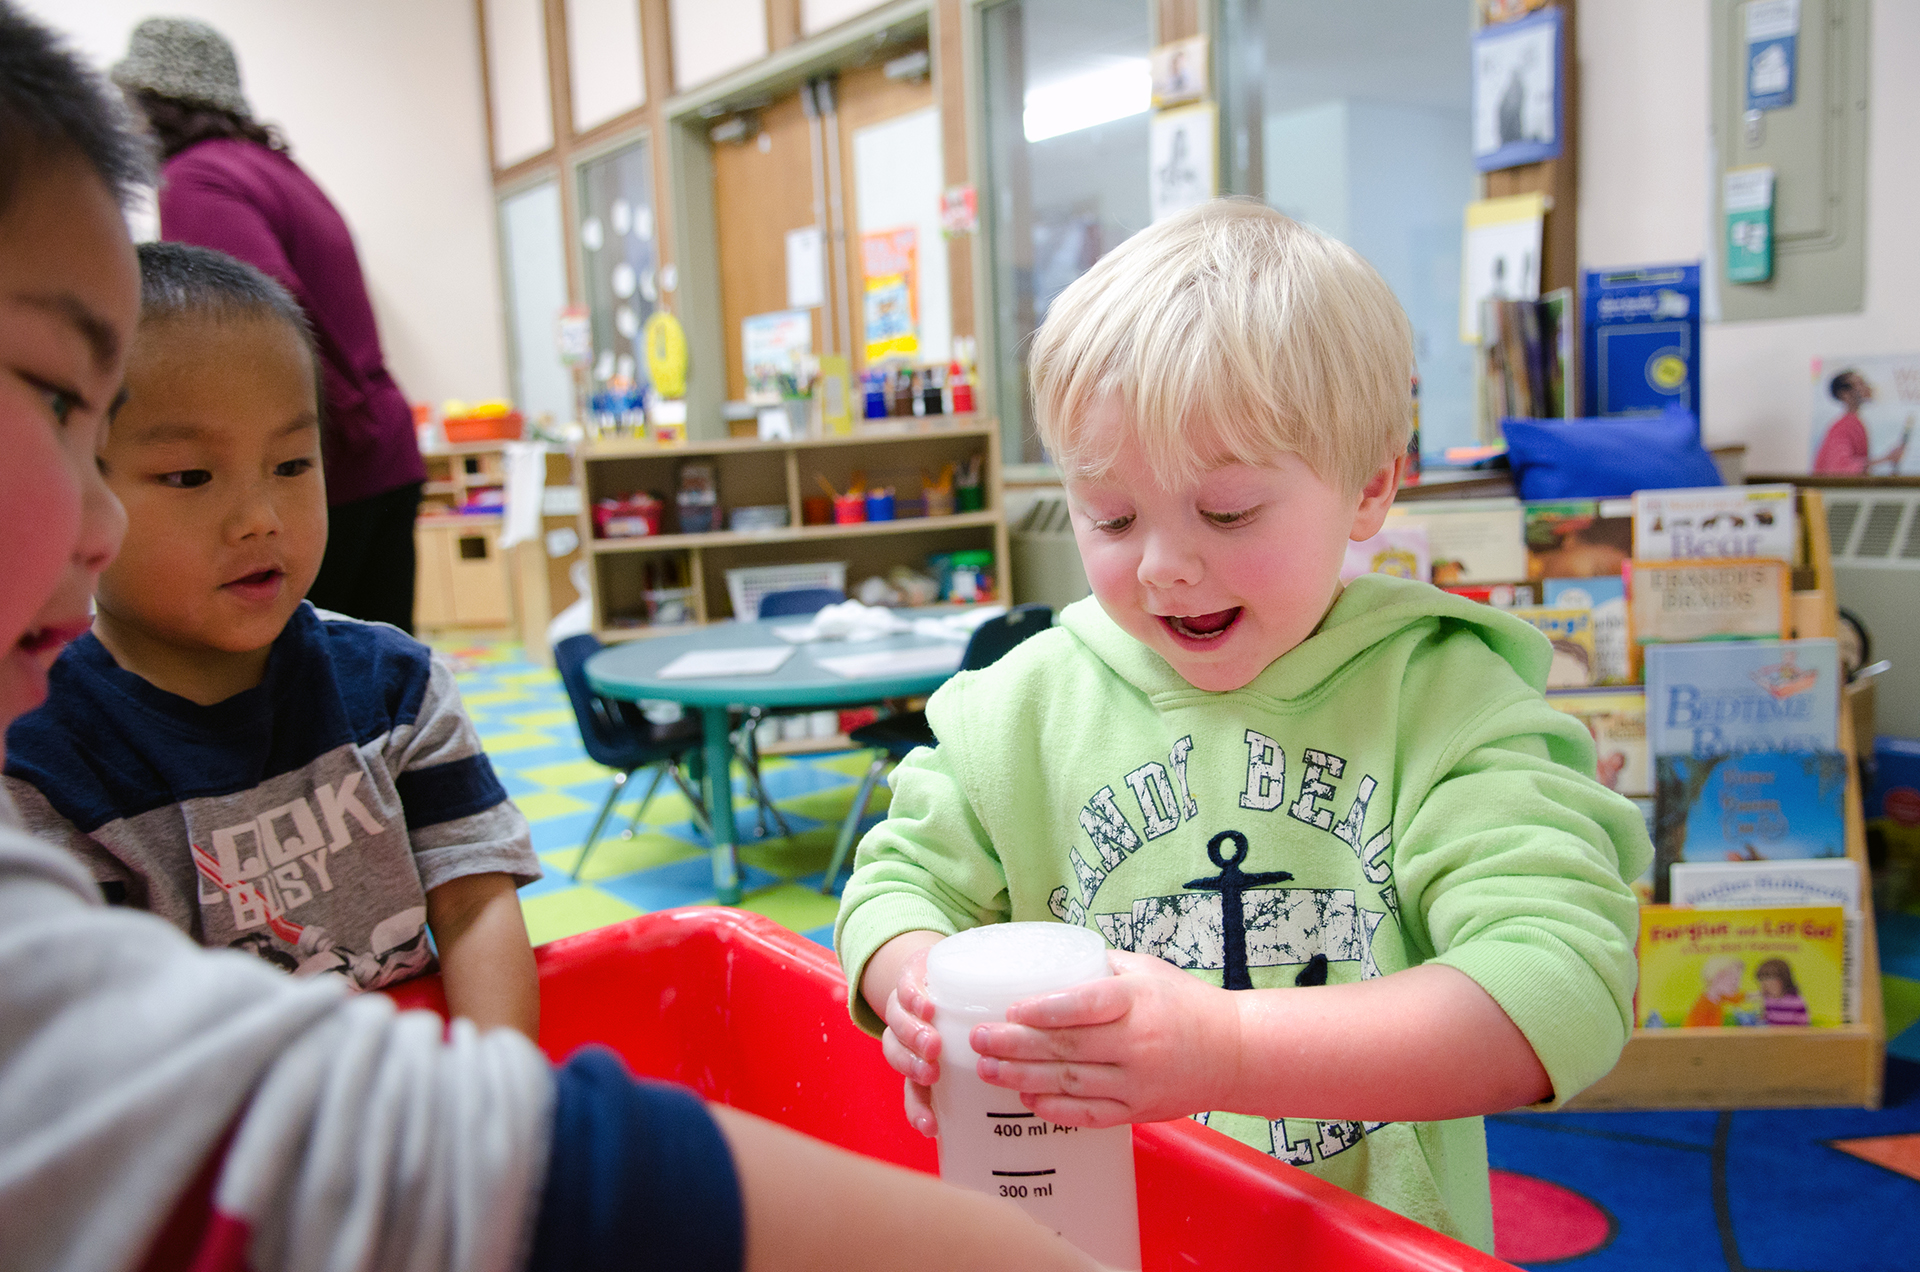 Getting specific about what works in early learning classrooms, 2 column